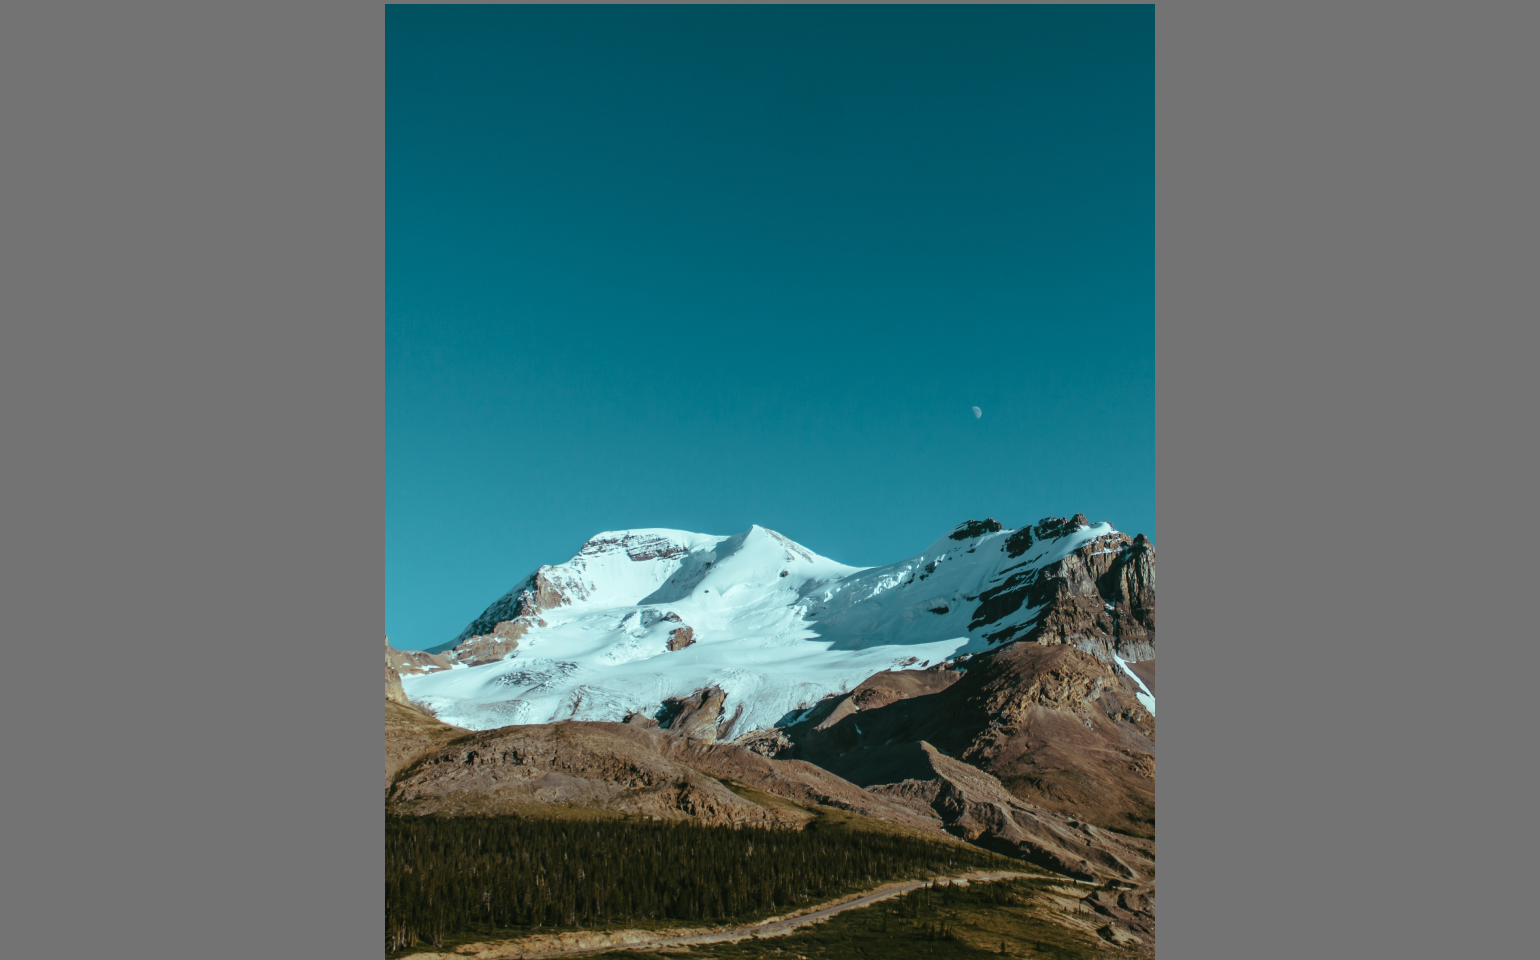 Epic mountain landscape with daytime moon on blue-green sky original photo by Ryan Schroeder